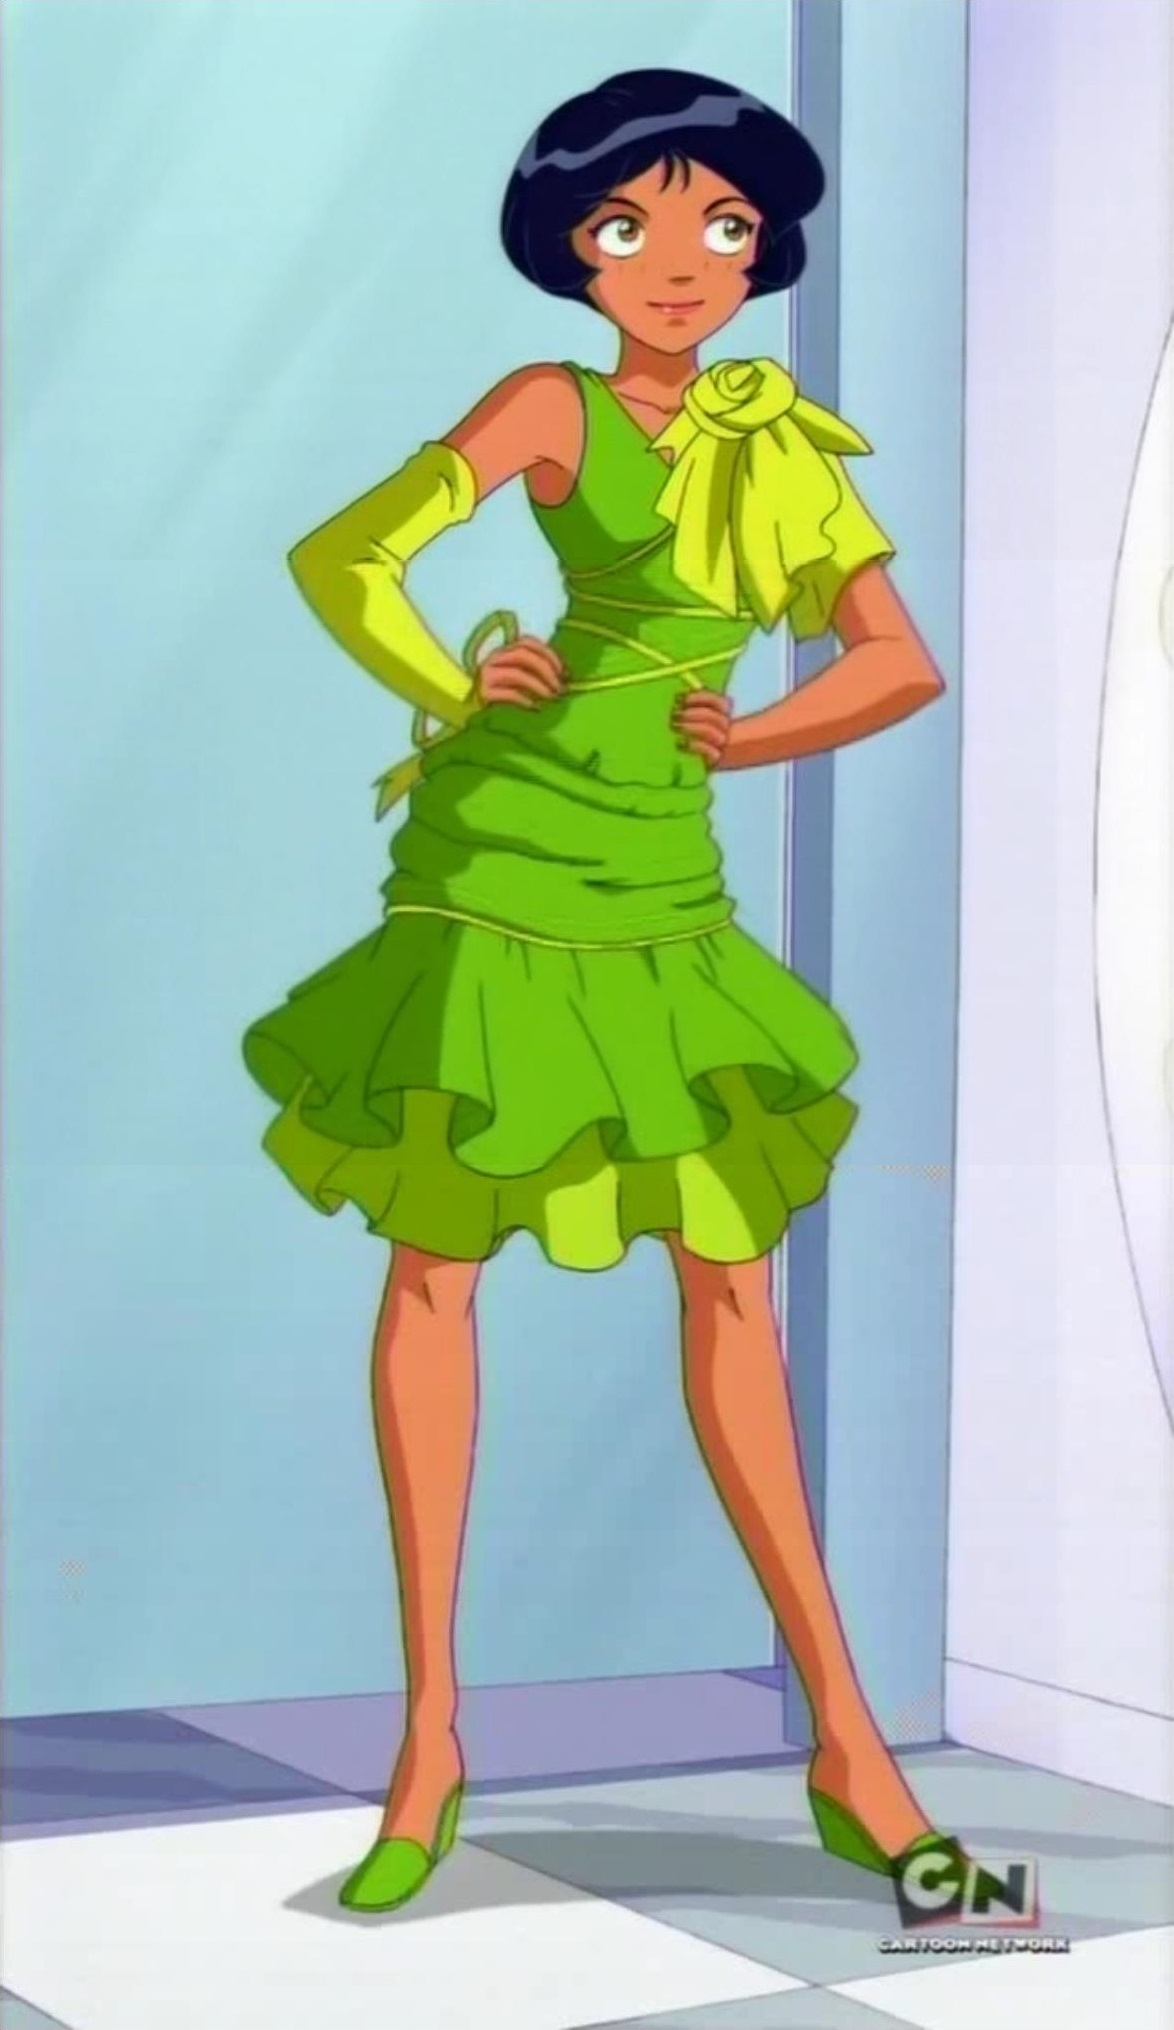 Image alex 39 s new dress totally spies wiki - Totally spies alex ...